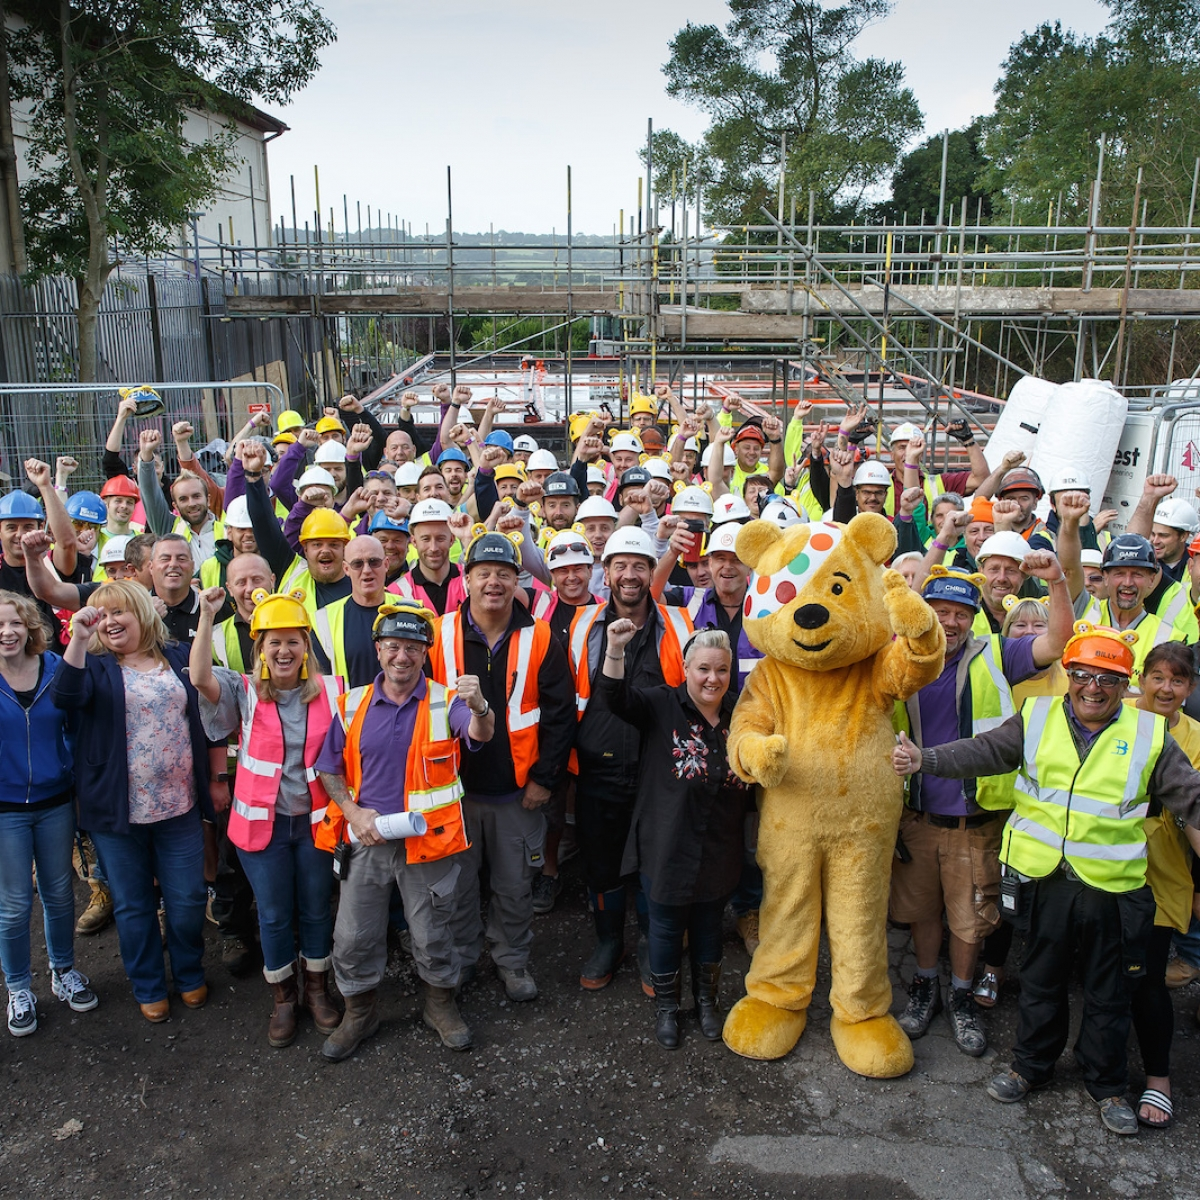 DIY SOS The Million Pound Build for Children in Need for The Roots Foundation in Swansea